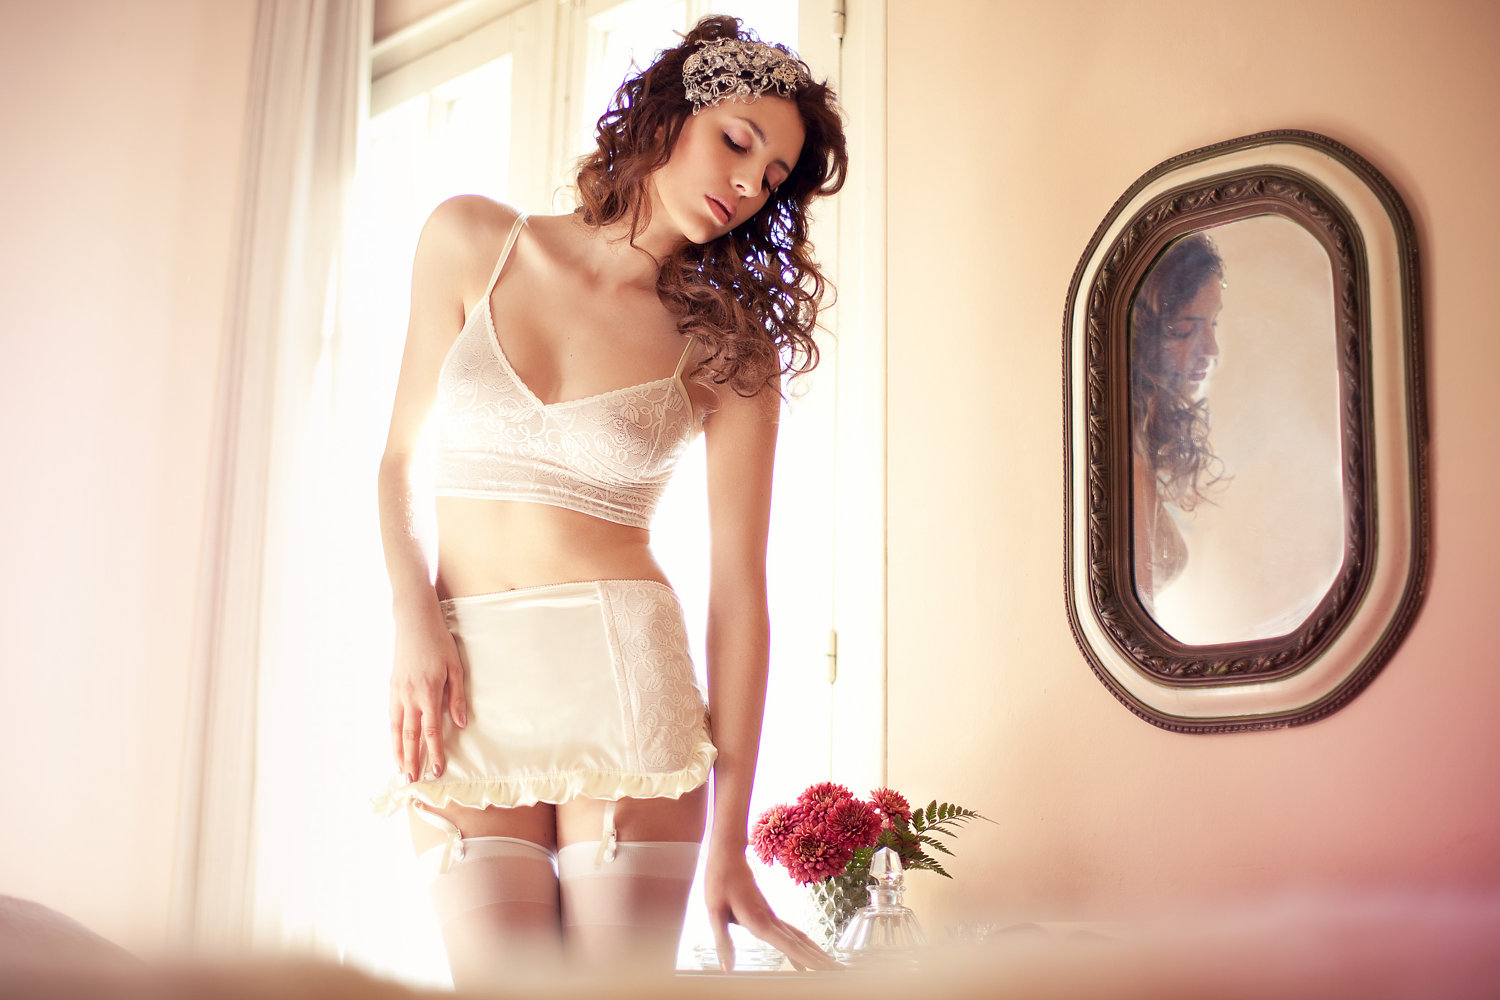 boudoir undergarments for wedding dress 42 best images about boudoir on Pinterest Bridal boudoir photography Nottingham and Underwire bras